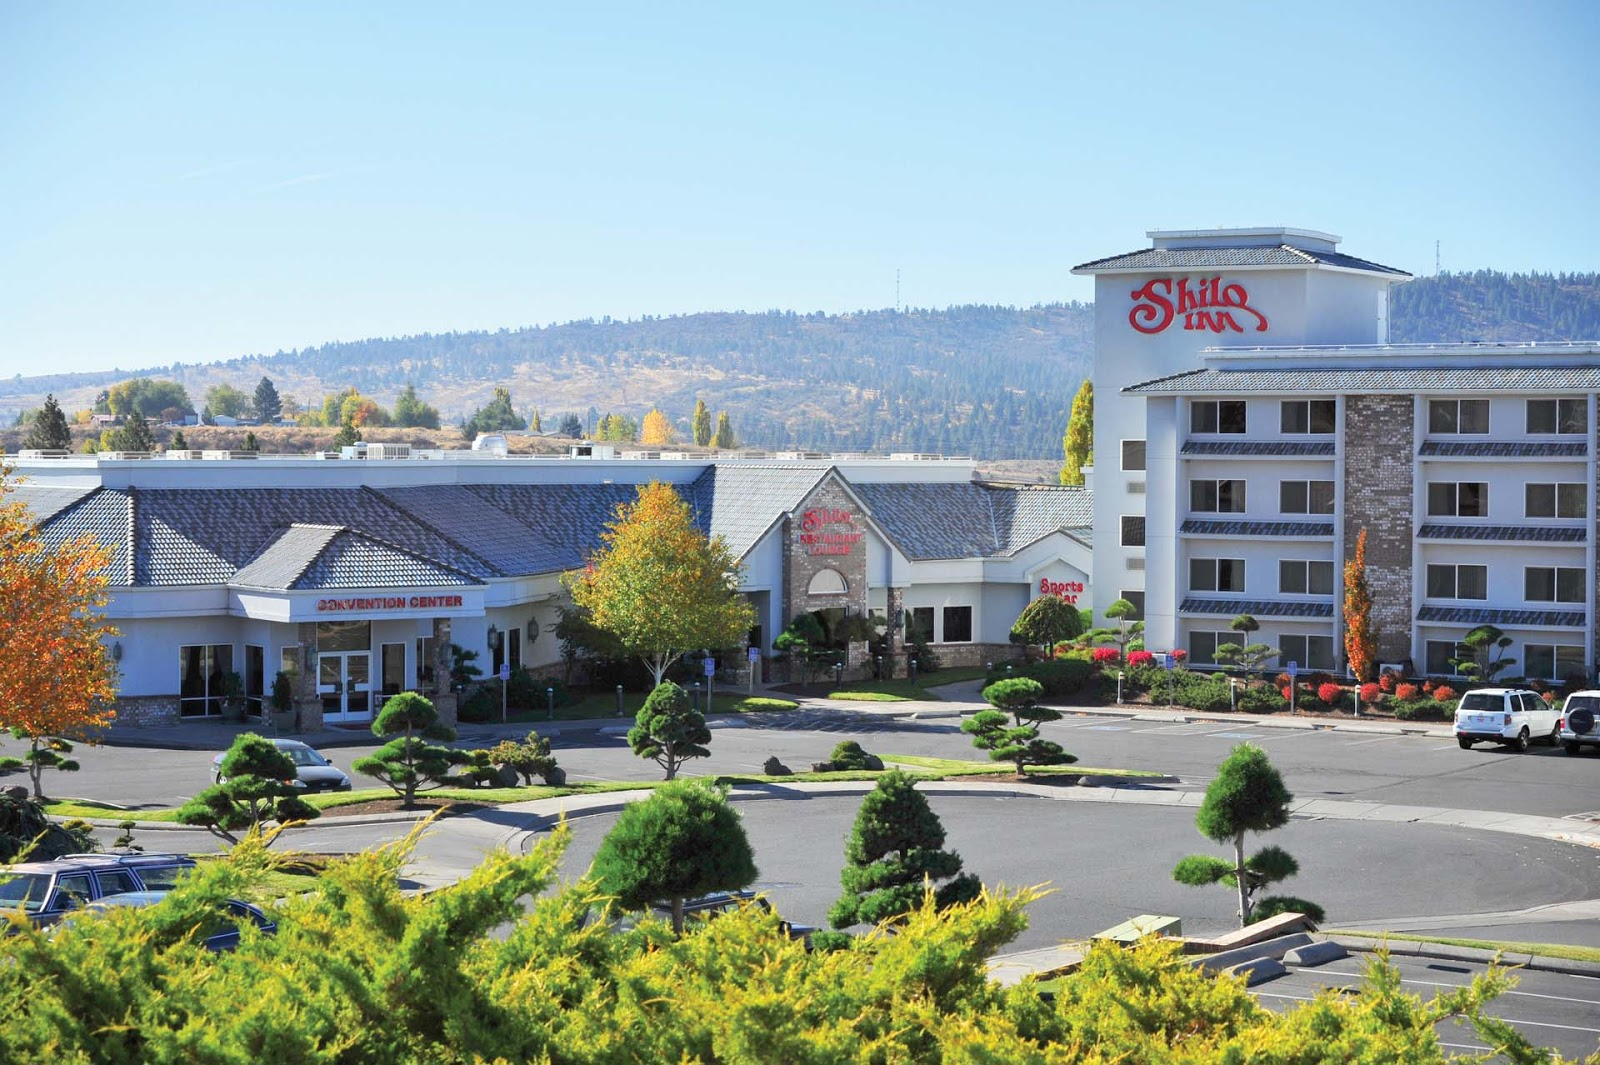 Shilo Inns Suites Hotels Locations